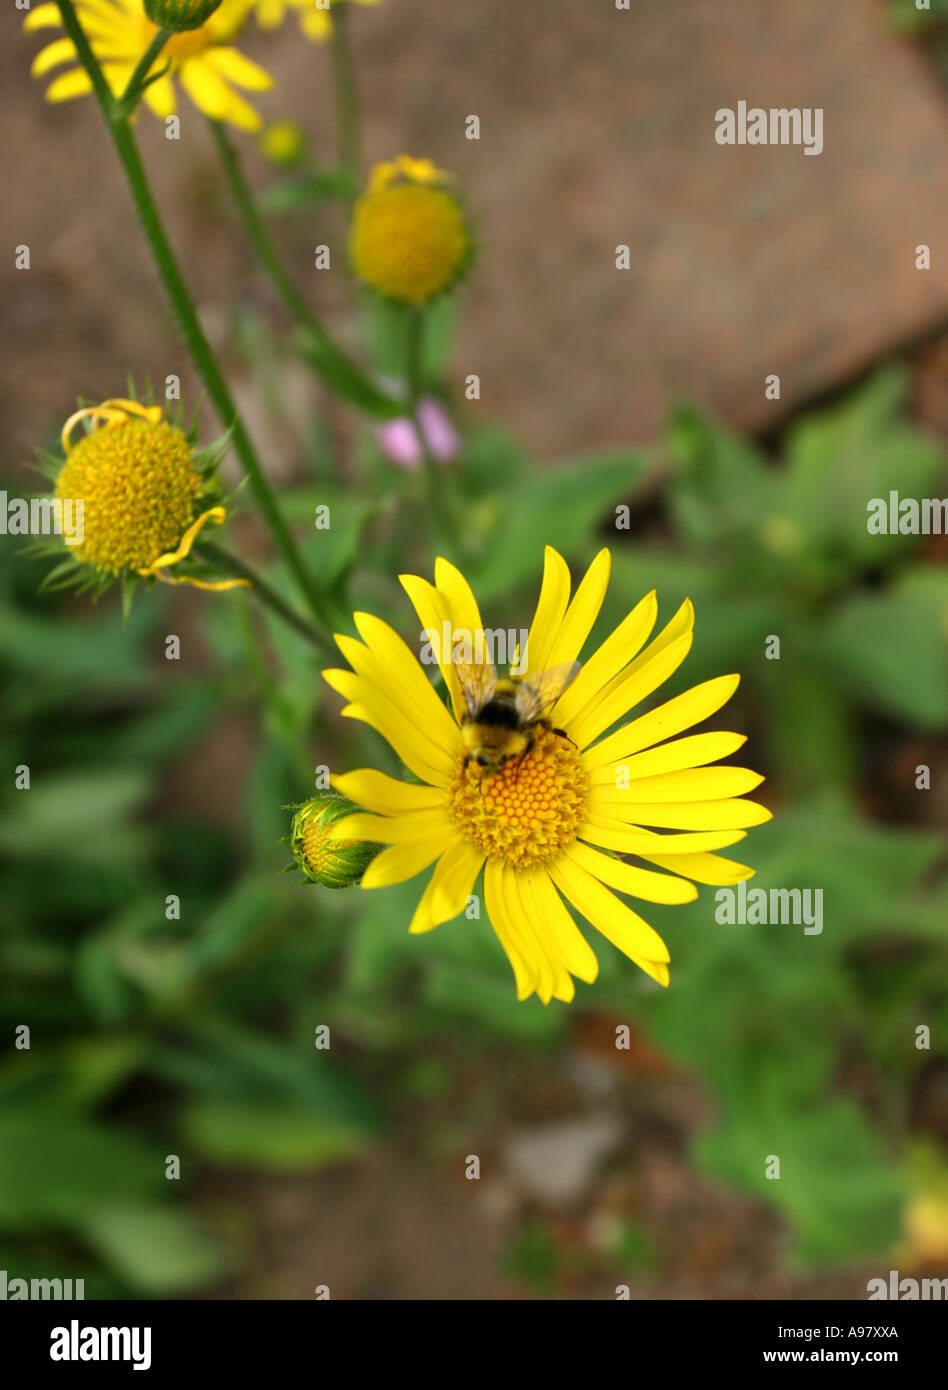 yellow aster flower with bumble bee stock photo, royalty free, Beautiful flower